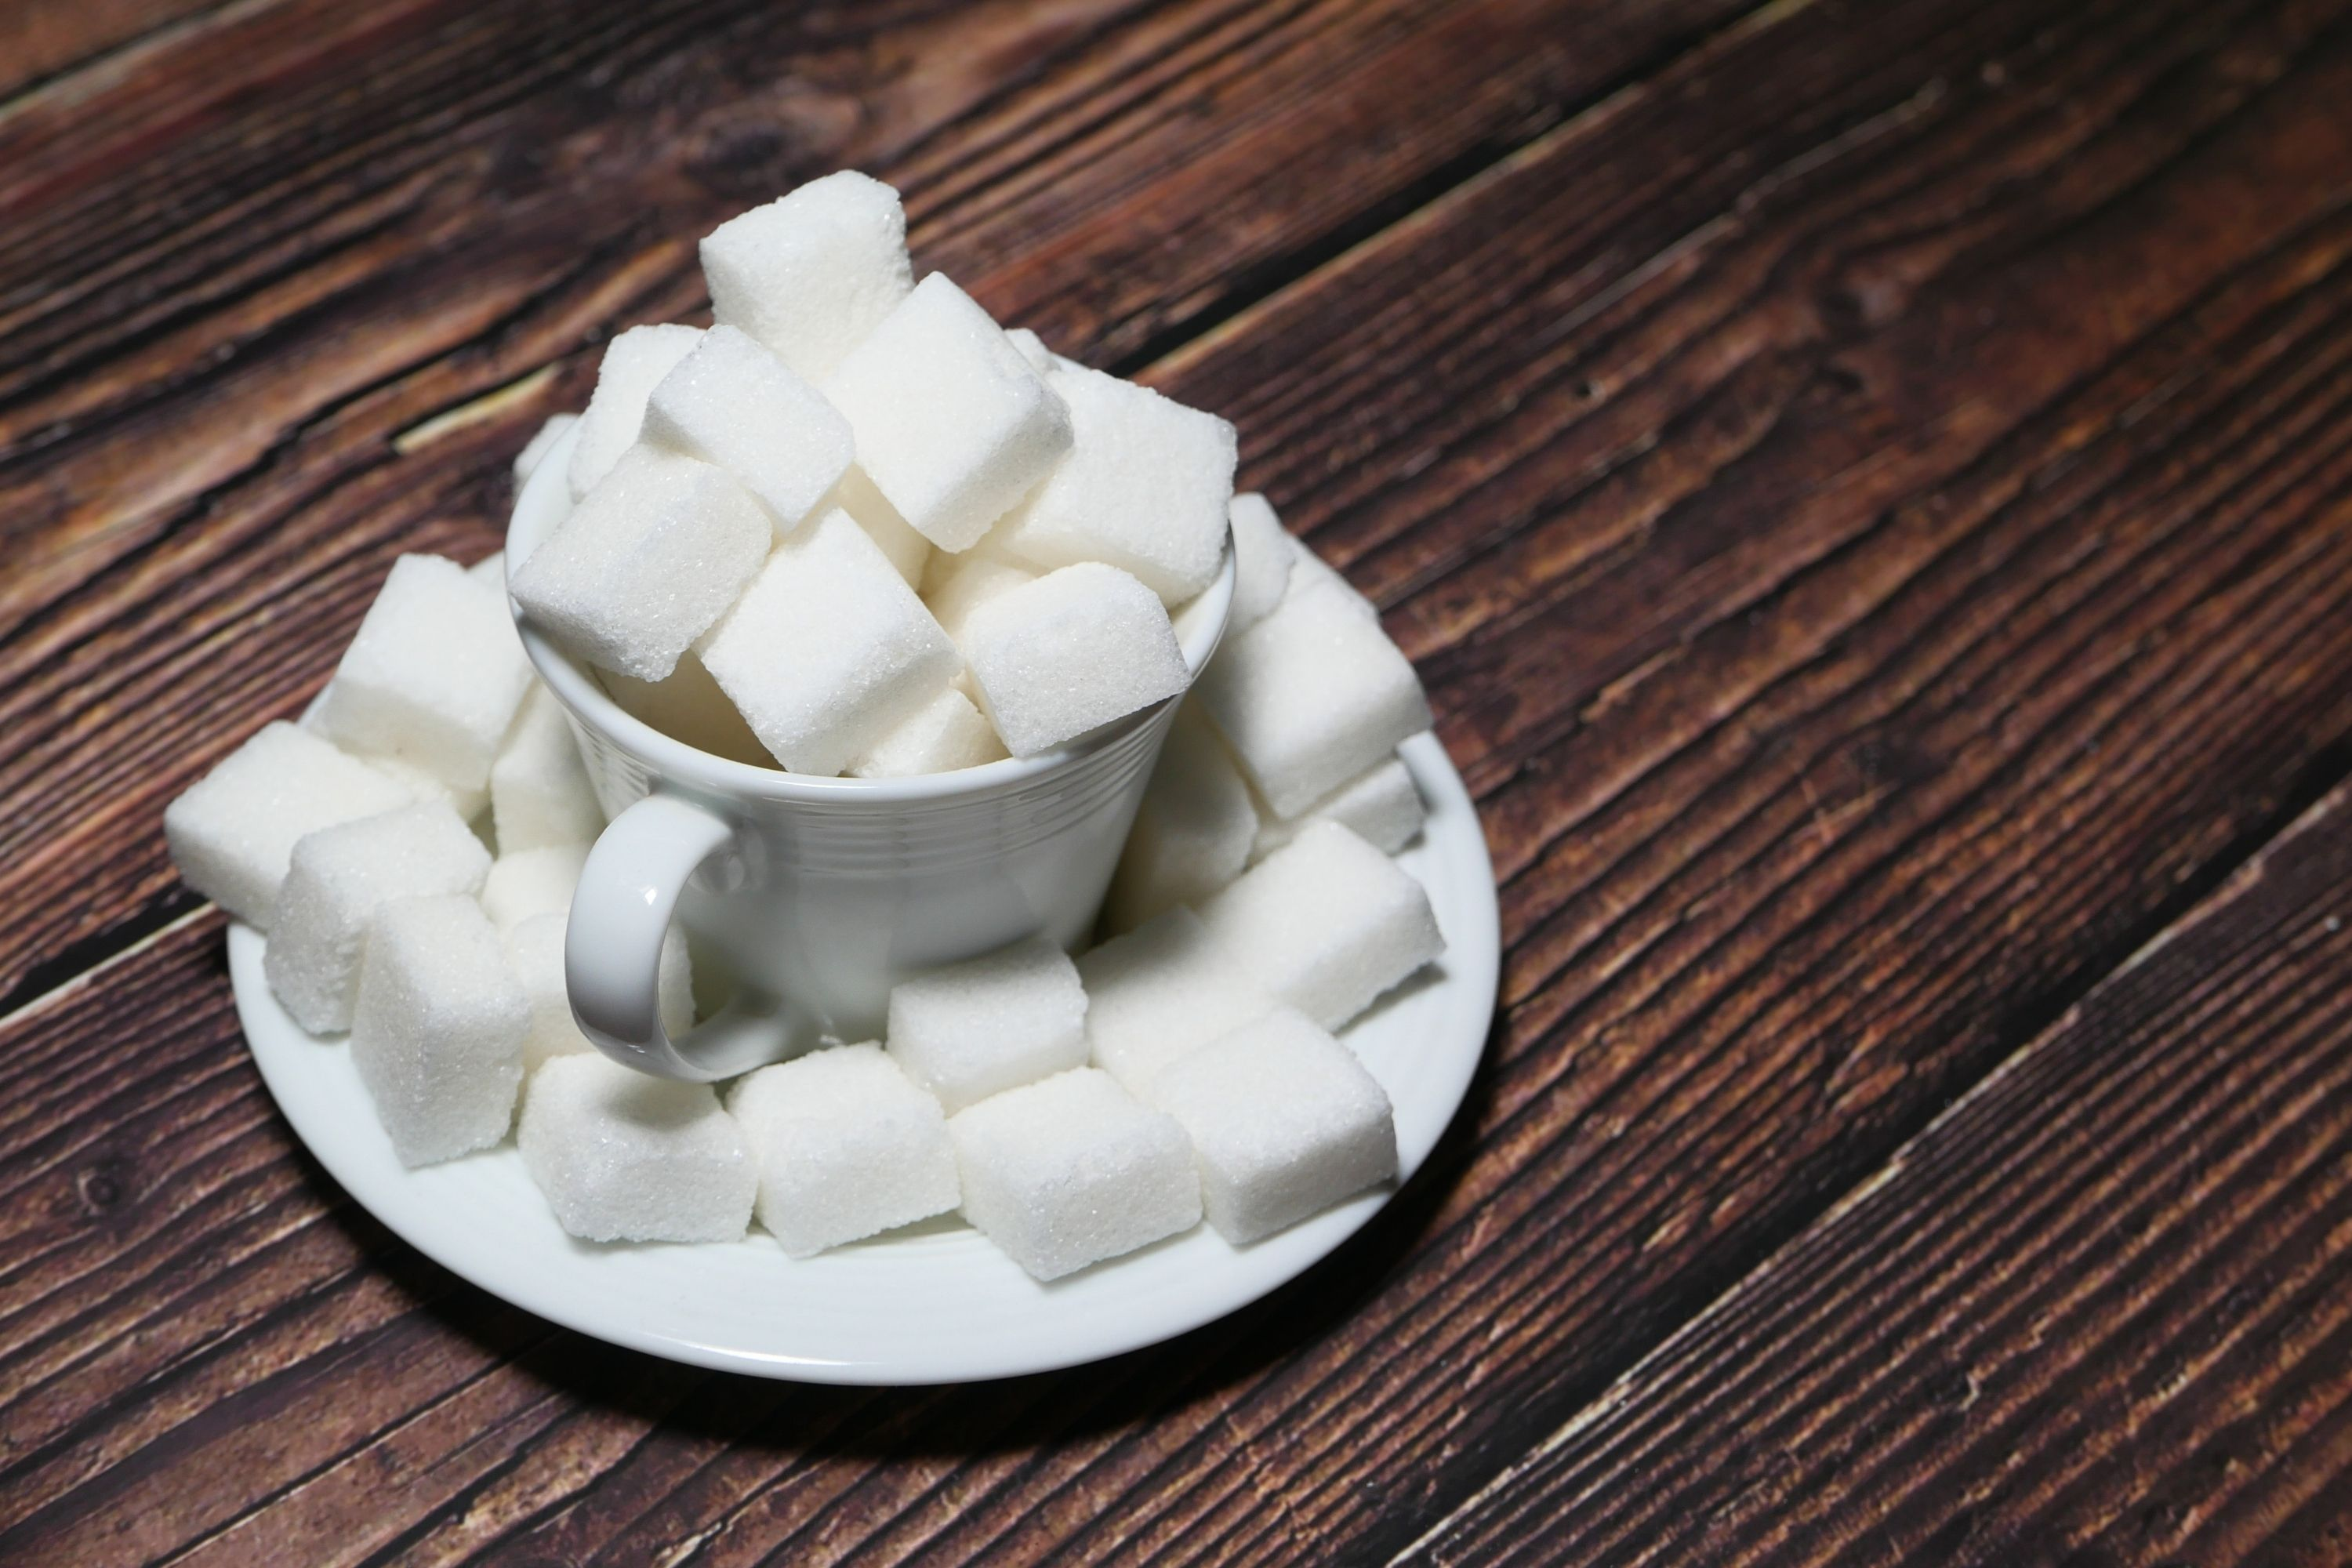 Why You Should Actually Listen to Your Gut reduce sugar intake